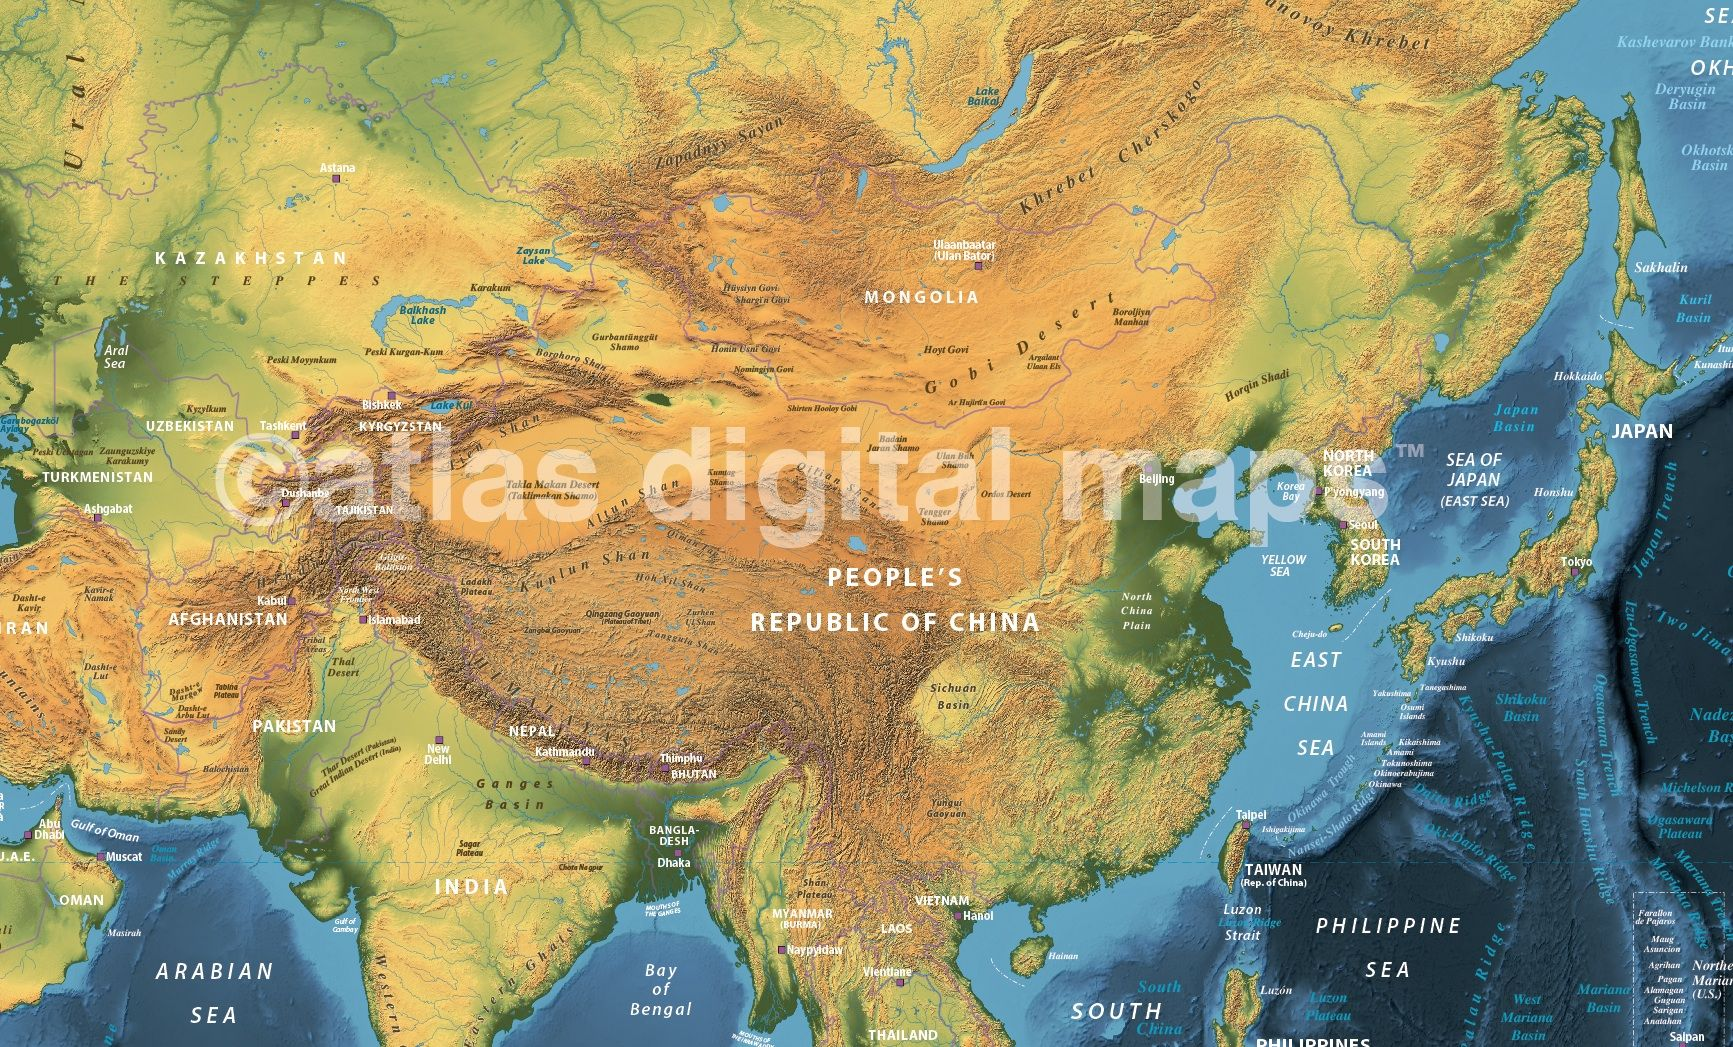 Land and sea relief map of asia with navy sea detail world maps dark style contemporary canvas world wall map x gumiabroncs Gallery